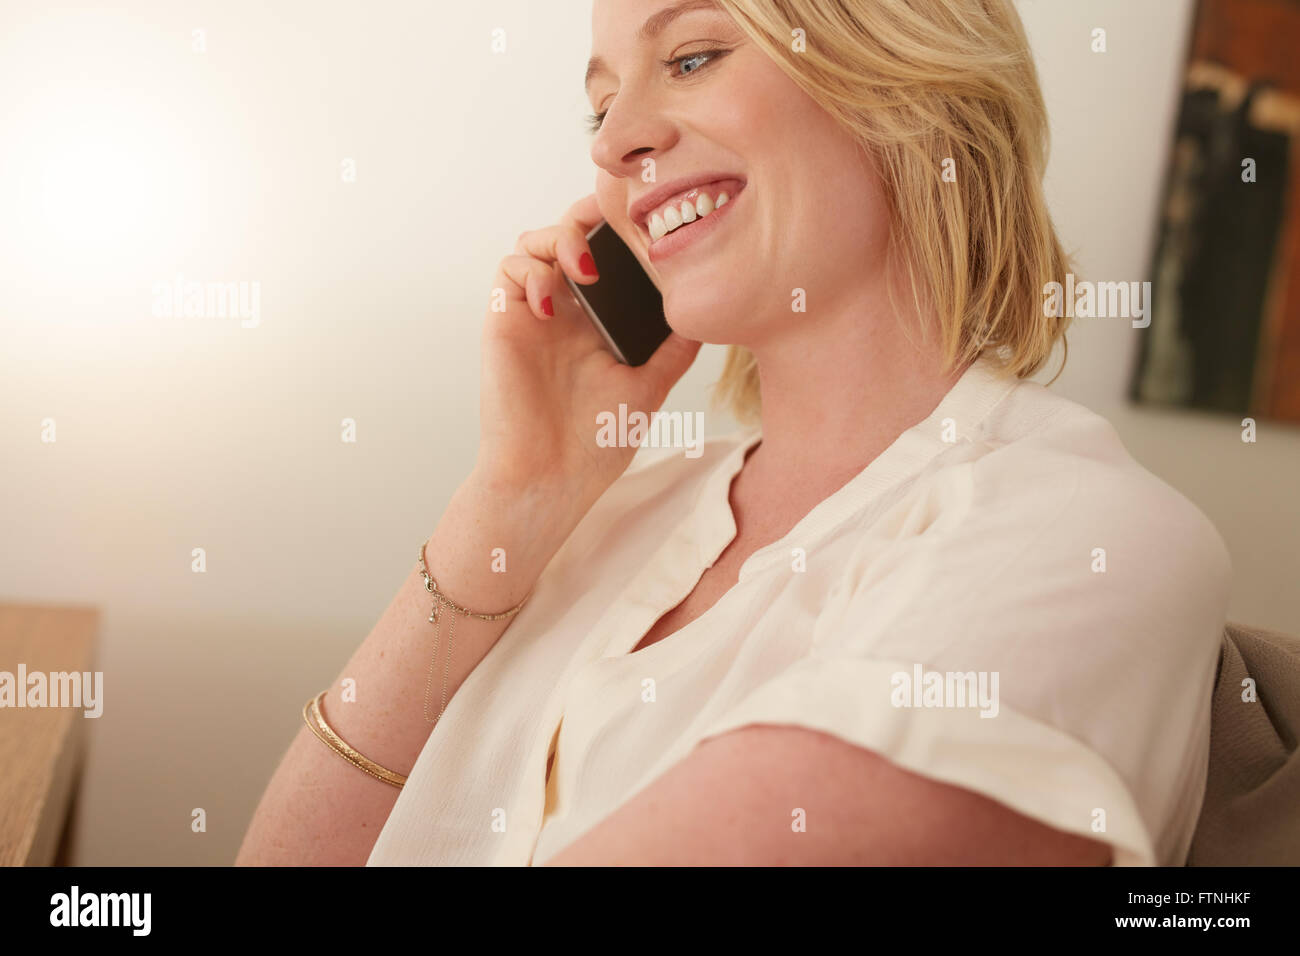 Close up of a happy woman talking on mobile phone. Caucasian female in conversation on cellphone. - Stock Image